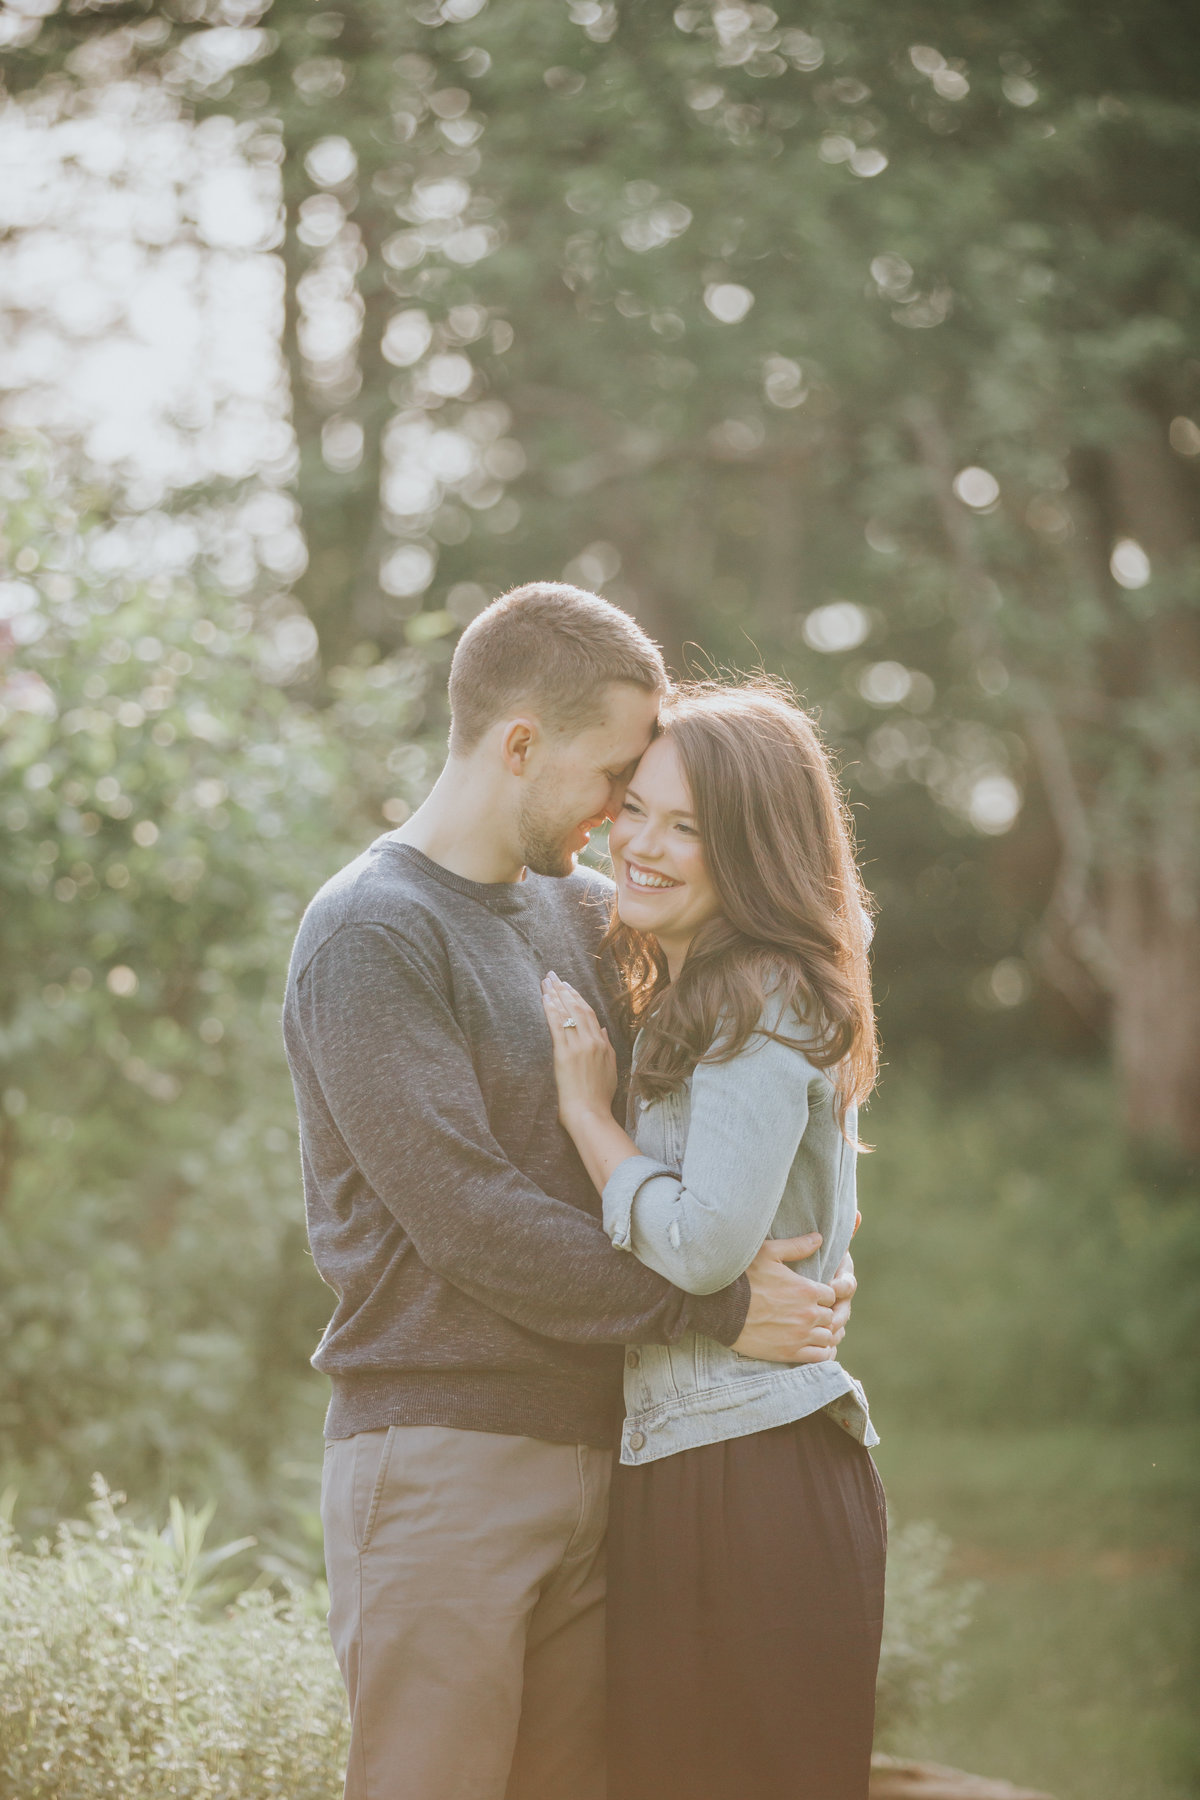 woodstock-vermont-couples-engagement-portrait-photographer-104